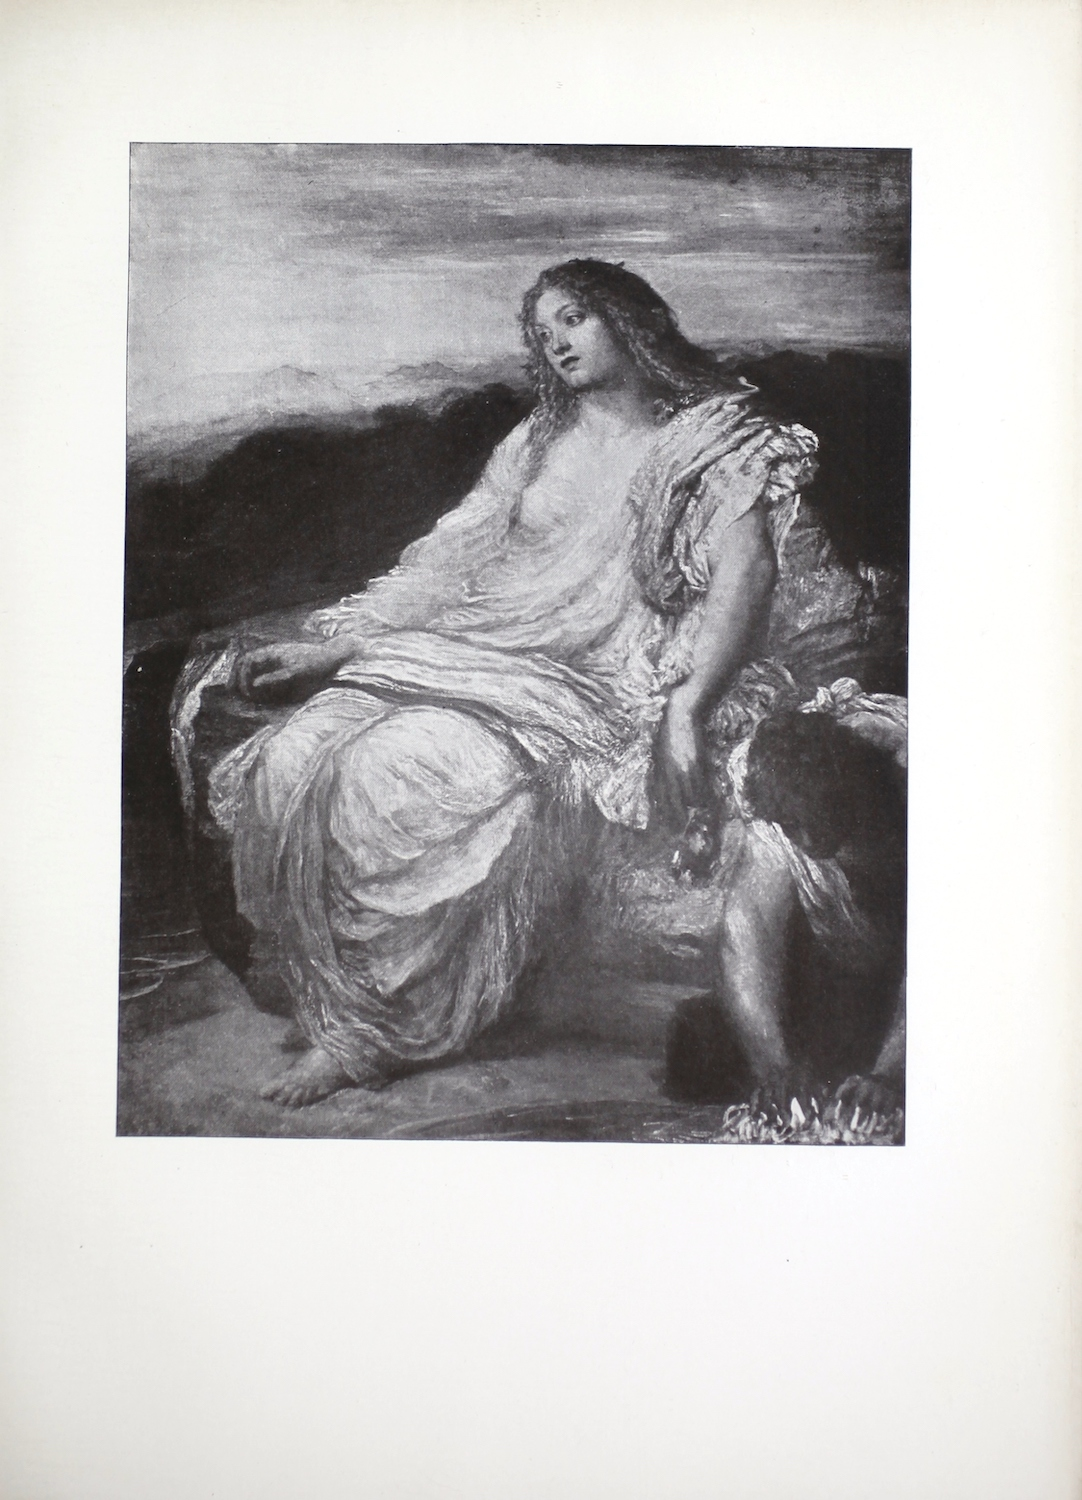 The halftone image depicts the mythological figure, Ariadne, looking out over the landscape that surrounds her. Ariadne sits in three-quarter profile facing left, on what appears to be a large rock. Her hair hangs loose, down to her shoulders. Her full-length dress is a series of loose robes that hang from her shoulders. Her left arm is exposed with the robe bundled up on her left shoulder. Her left hand hangs down by her side. Her right arm is covered by her robes and her right-hand rests on top of the rock. Her left foot is bare and exposed from underneath the hem of her robes. The ground appears to be a stone altar because it is smooth, and a male servant is depicted to left of Ariadne in the lower corner on his hands and knees scrubbing its surface. Only his upper body is visible. He gazes down and uses both hands to scrub the floor. Behind the two figures, a distant landscape is visible beneath Ariadne, suggesting that she is sitting on top of a mountain. Additional mountains are visible in the background rising to the height of Ariadne's eyes. In front of the mountains, a dark tree line is visible rising to Ariadne's shoulders. Above the trees and mountains, a cloudy sky is depicted.